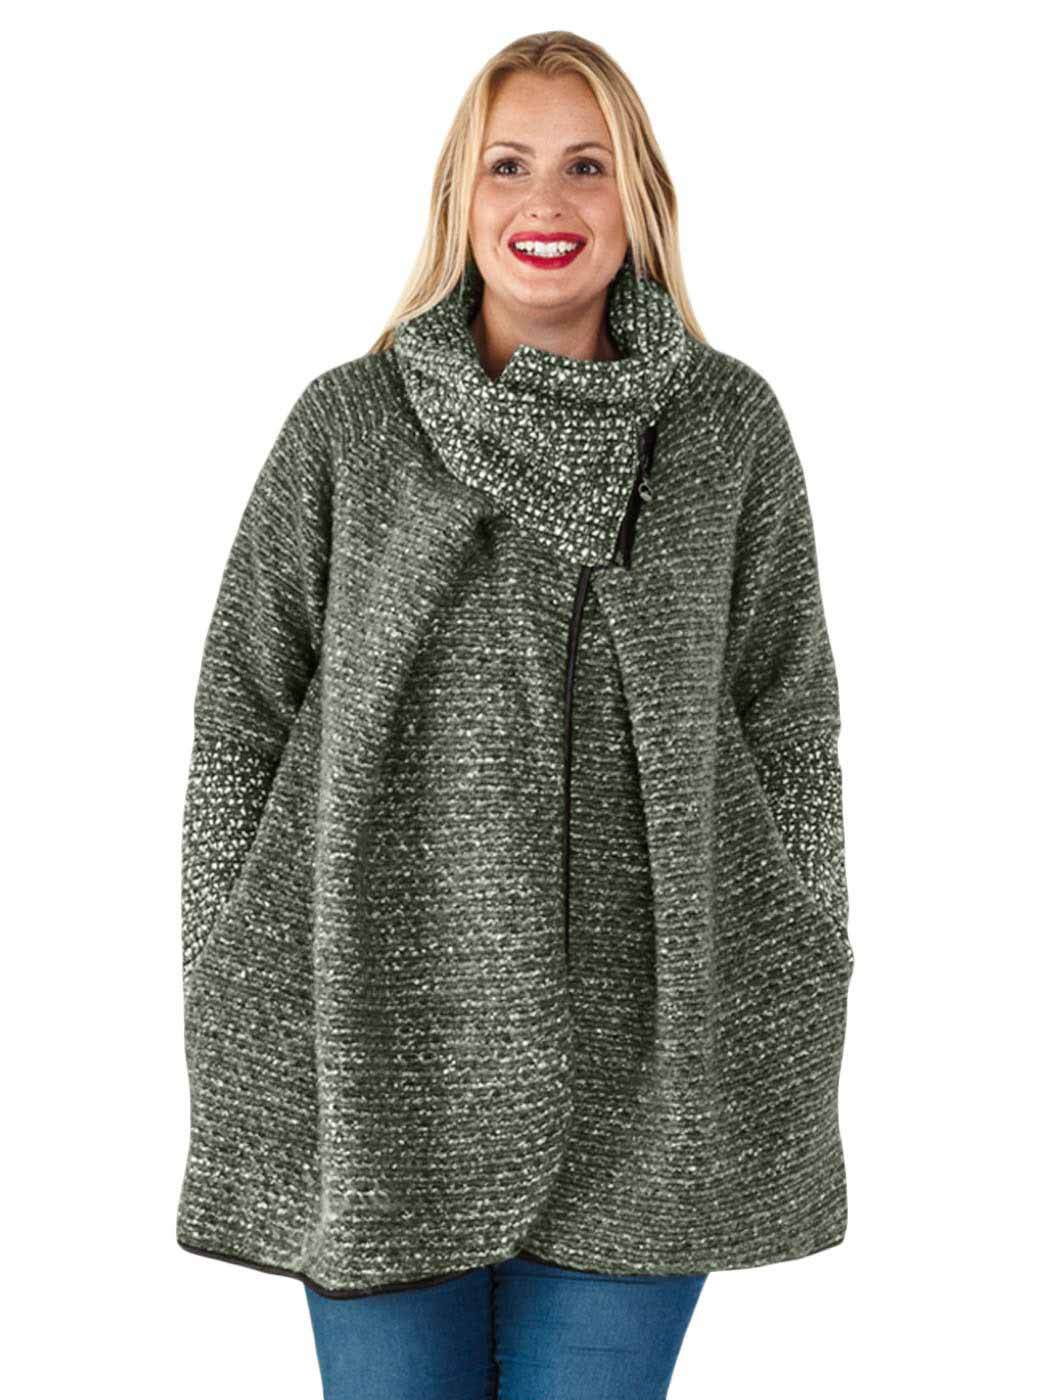 Womens knitted jacket